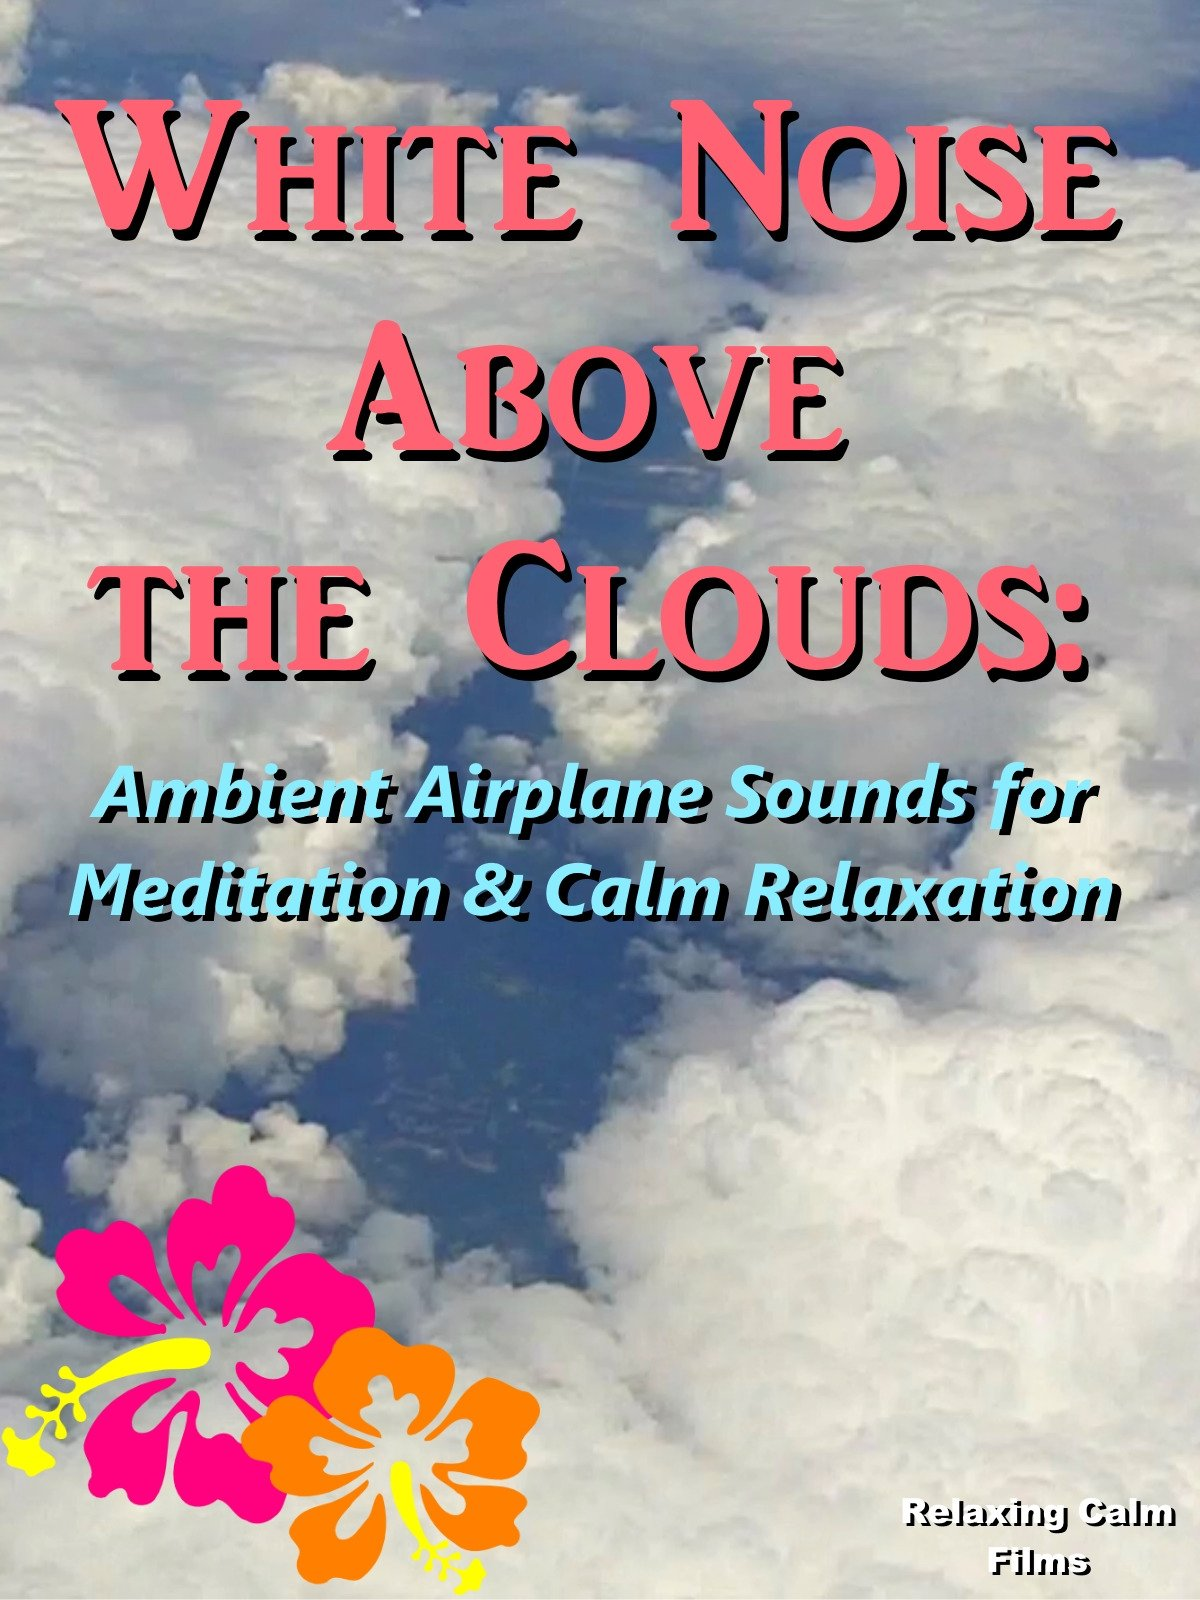 White Noise Above the Clouds: Ambient Airplane Sounds for Meditation & Calm Relaxation